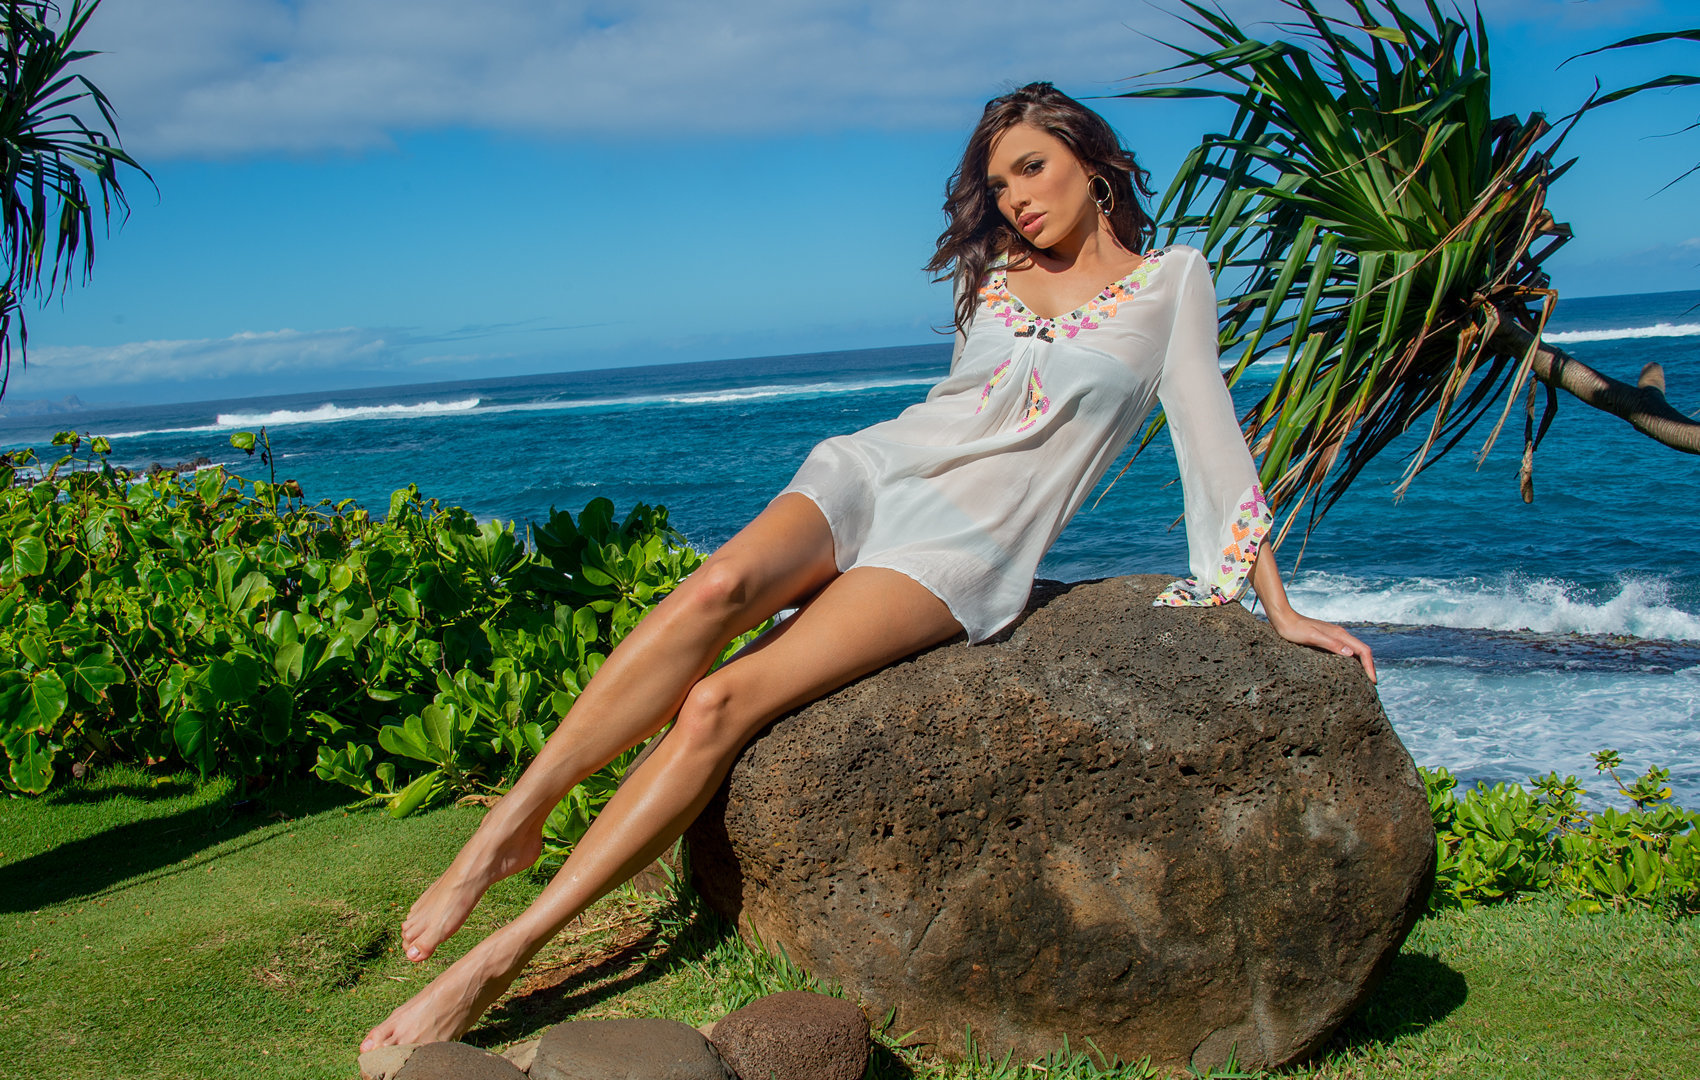 Big Island fashion photographers